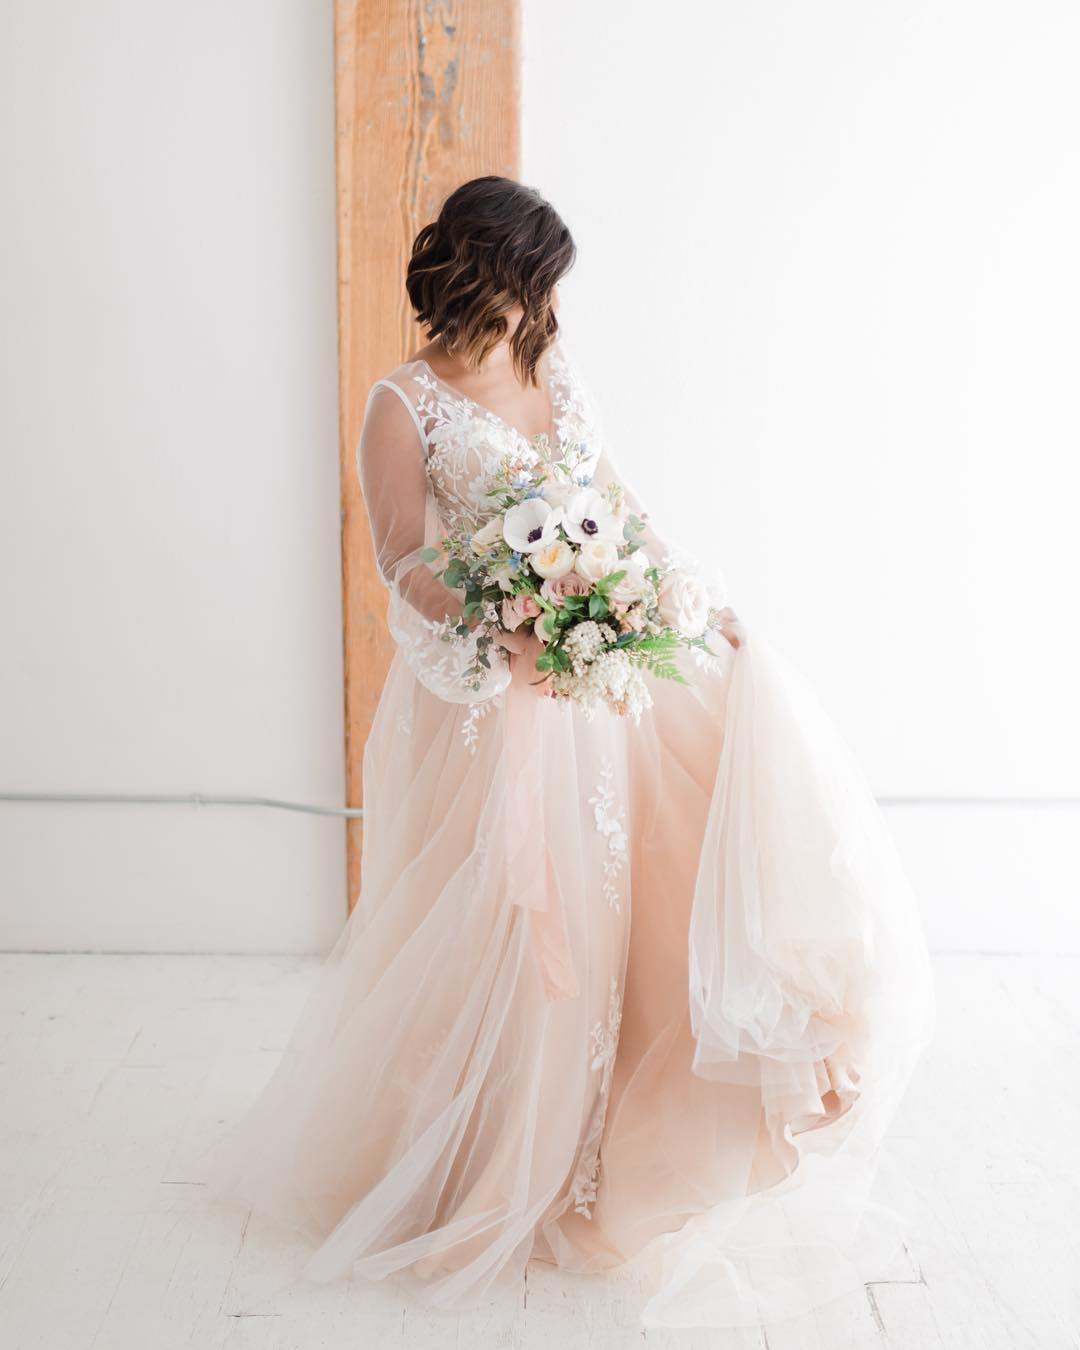 Full-body portrait of a bride posing with the bouquet